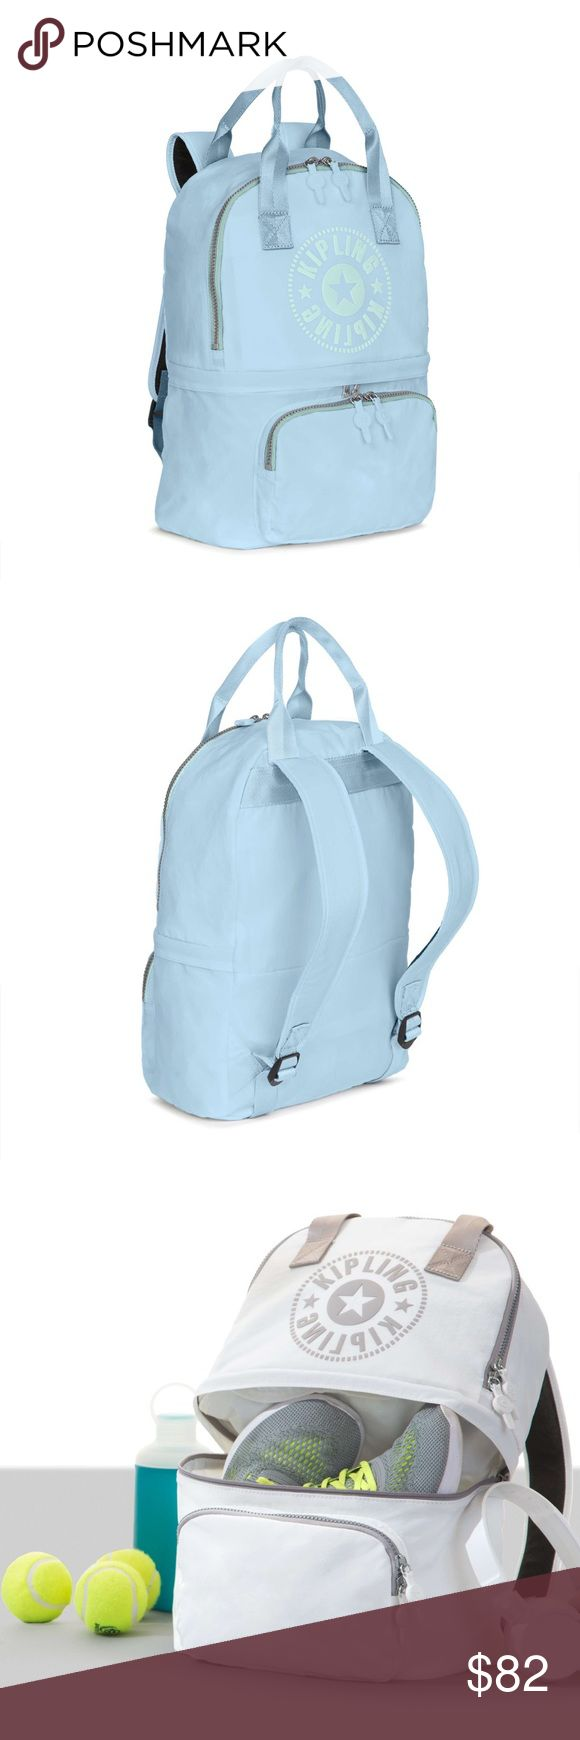 KIPLING DECLAN CONVERTIBLE BACKPACK (Light Blue) ORIGINAL PRICE: $119 NEW LAST PIC for authenticity #NWT #Kipling convertible #backpack, brand new with tags. This bag is so cute for the #spring and ready to roll into #summer with the inside zip that allows you to split the bag into two compartments. Just went swimming, separate your wet clothes and your wallet in this bag. My friend bought me a bday present that I already own, take it home for Spring. Kipling Bags Backpacks